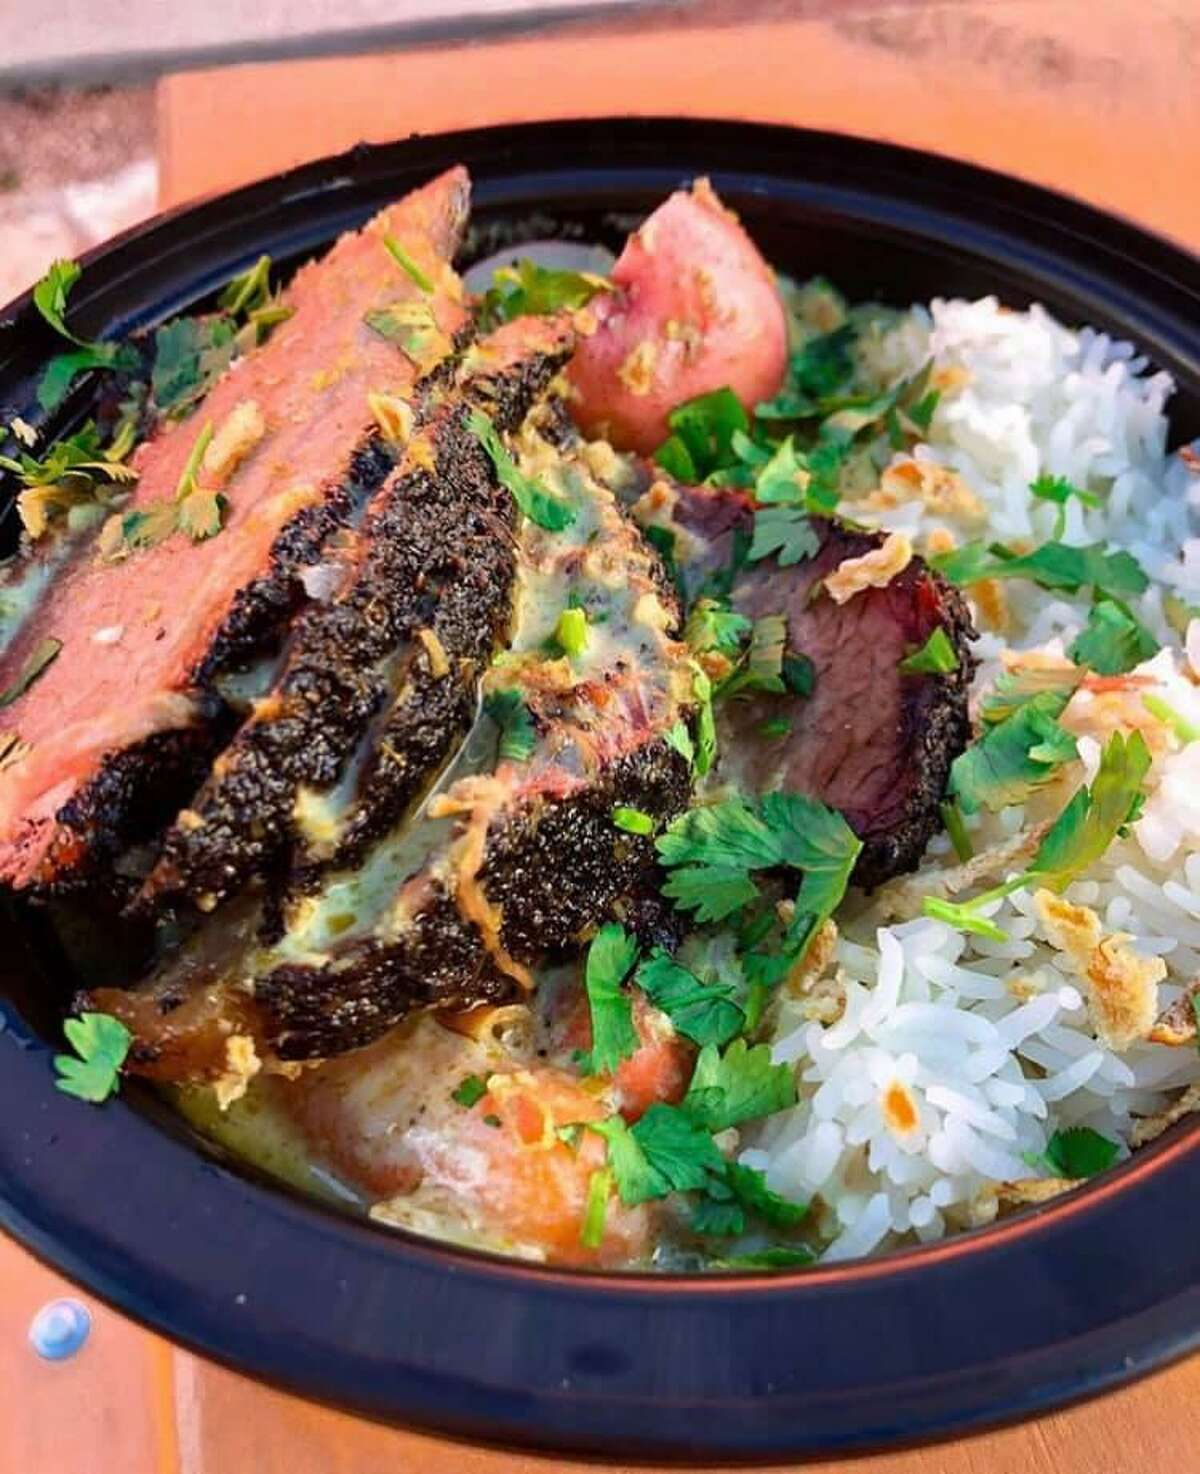 Curry Boys BBQ is now serving Southeast Asian rice bowls topped with Texas-style smoked meats.